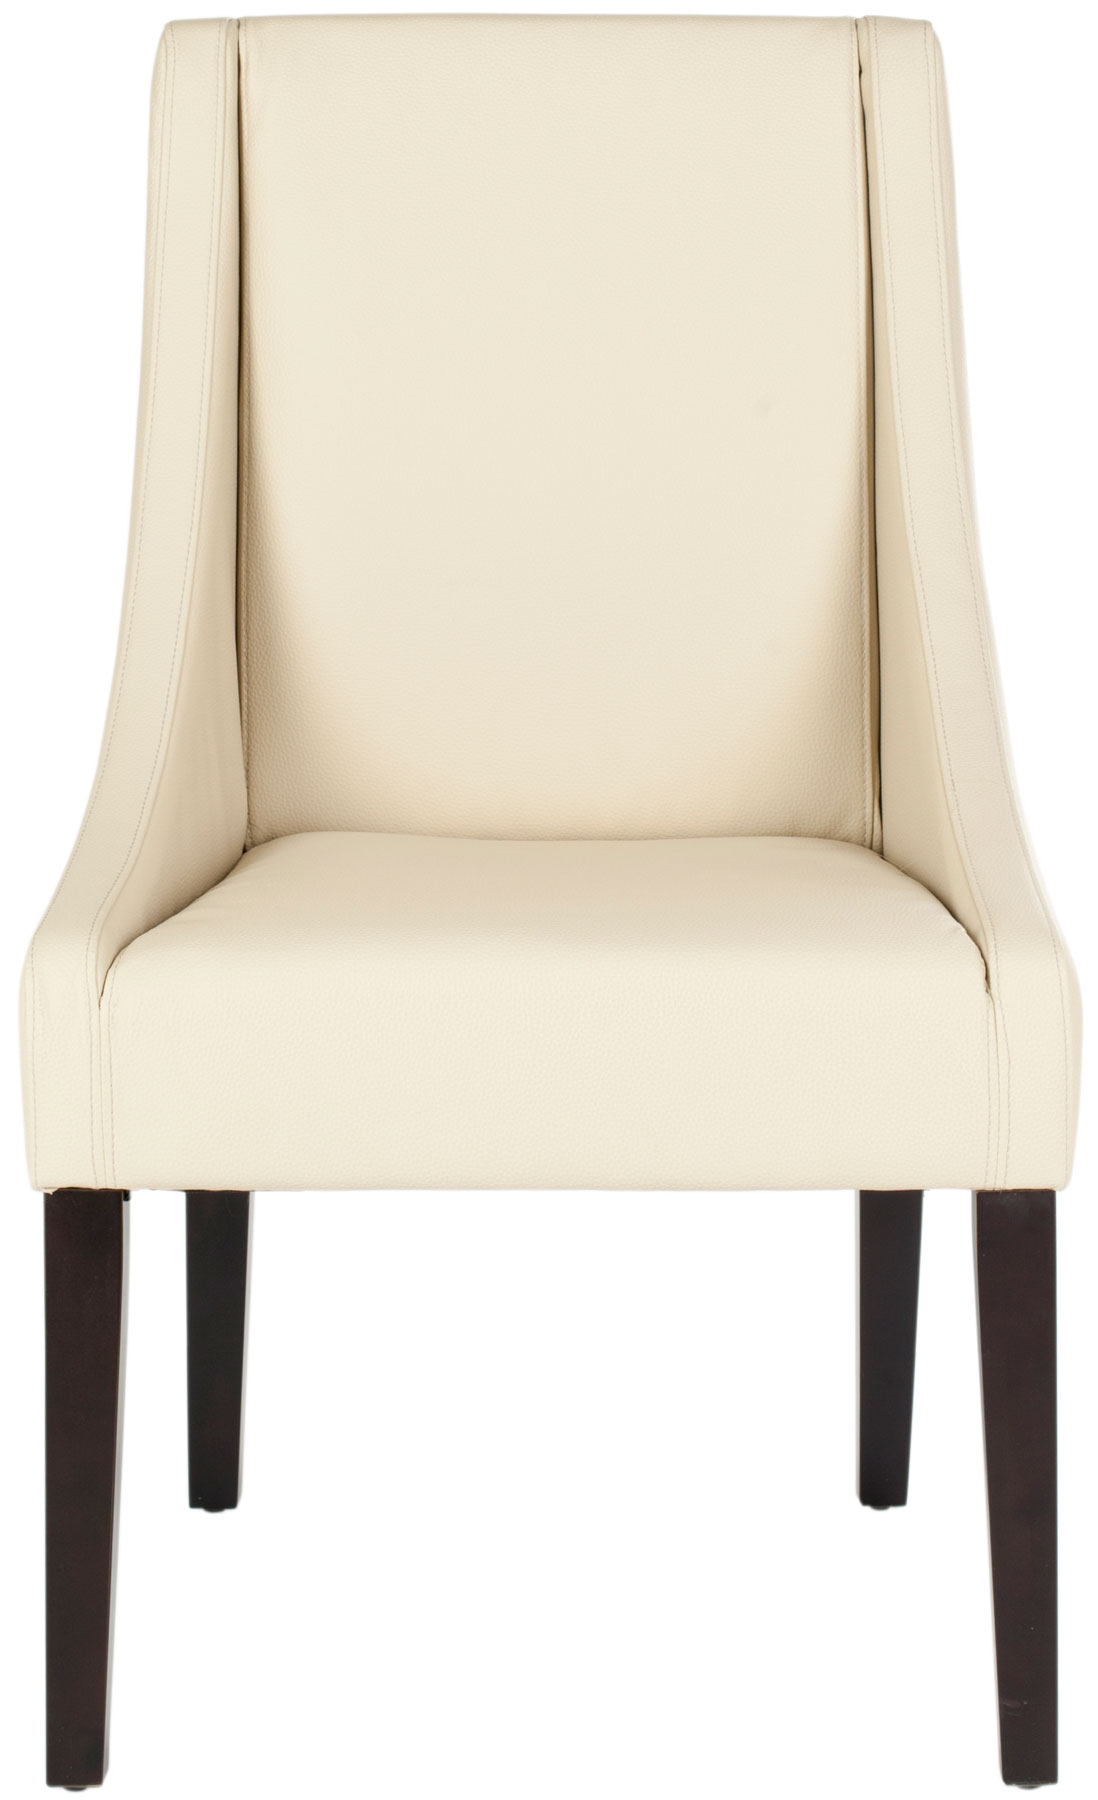 MCR4702A SET2 Dining Chairs Furniture by Safavieh